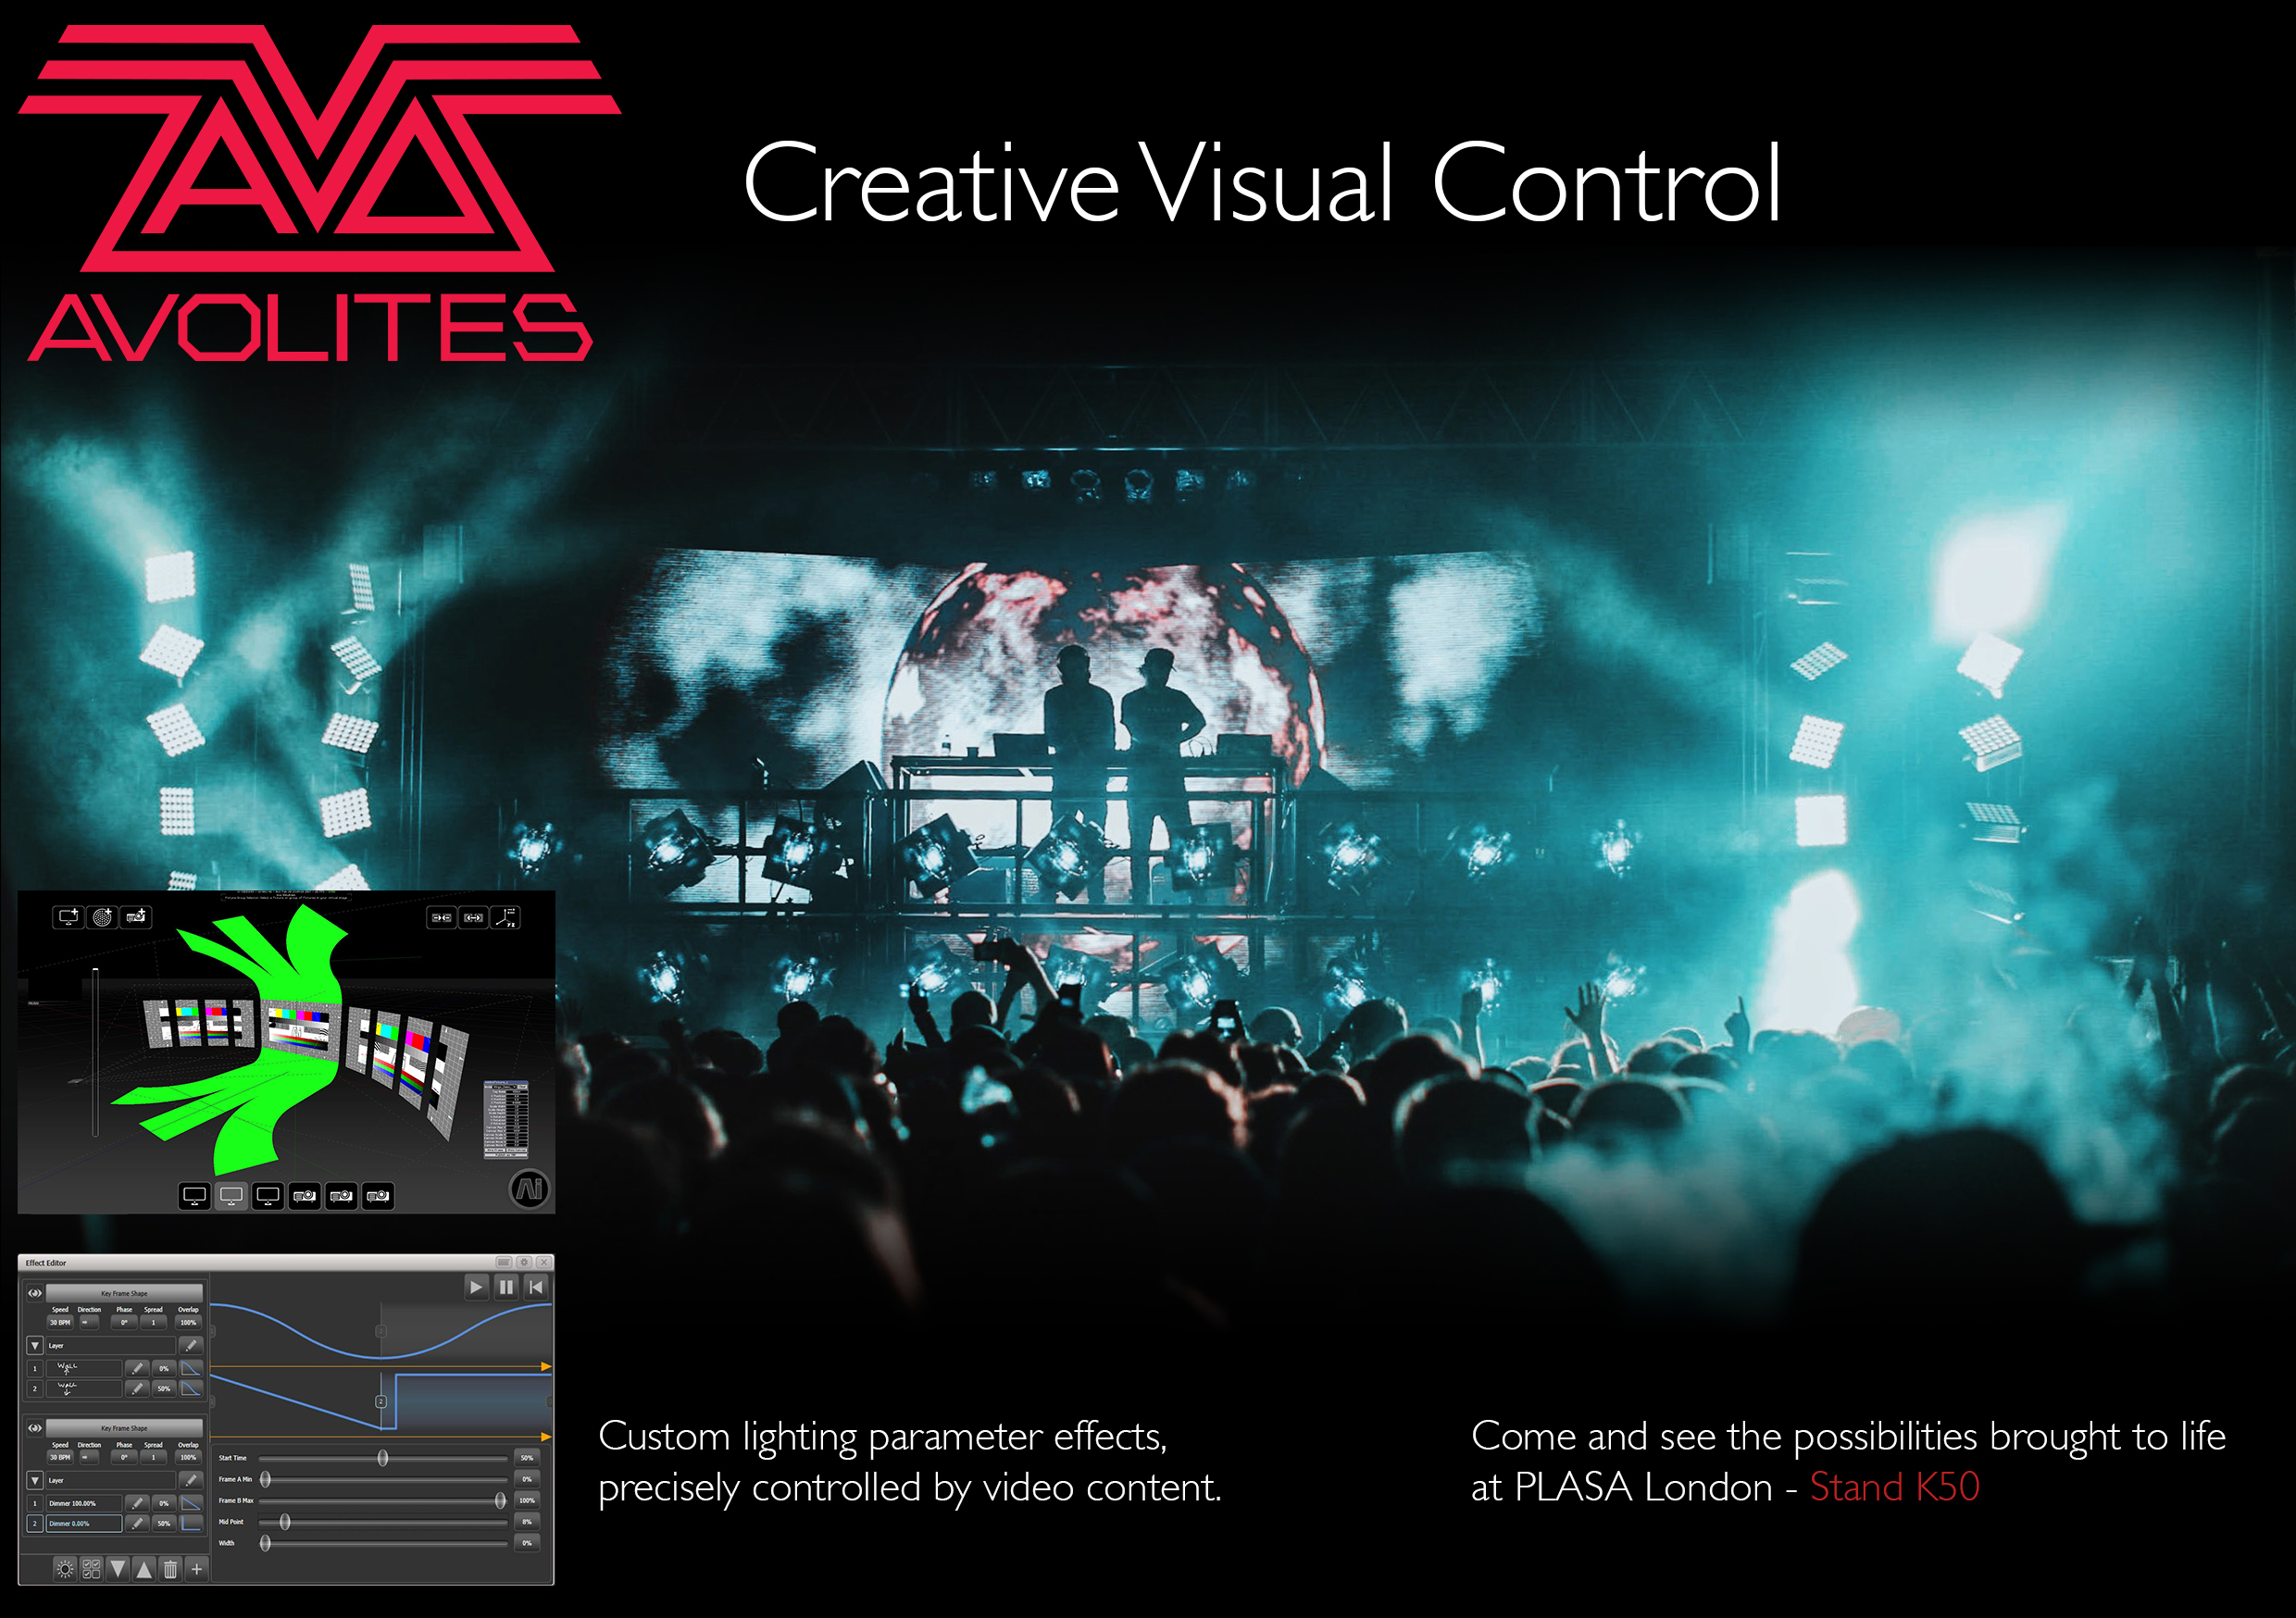 Avolites showcase lighting and video software updates, Titan v10.1 and Ai v10